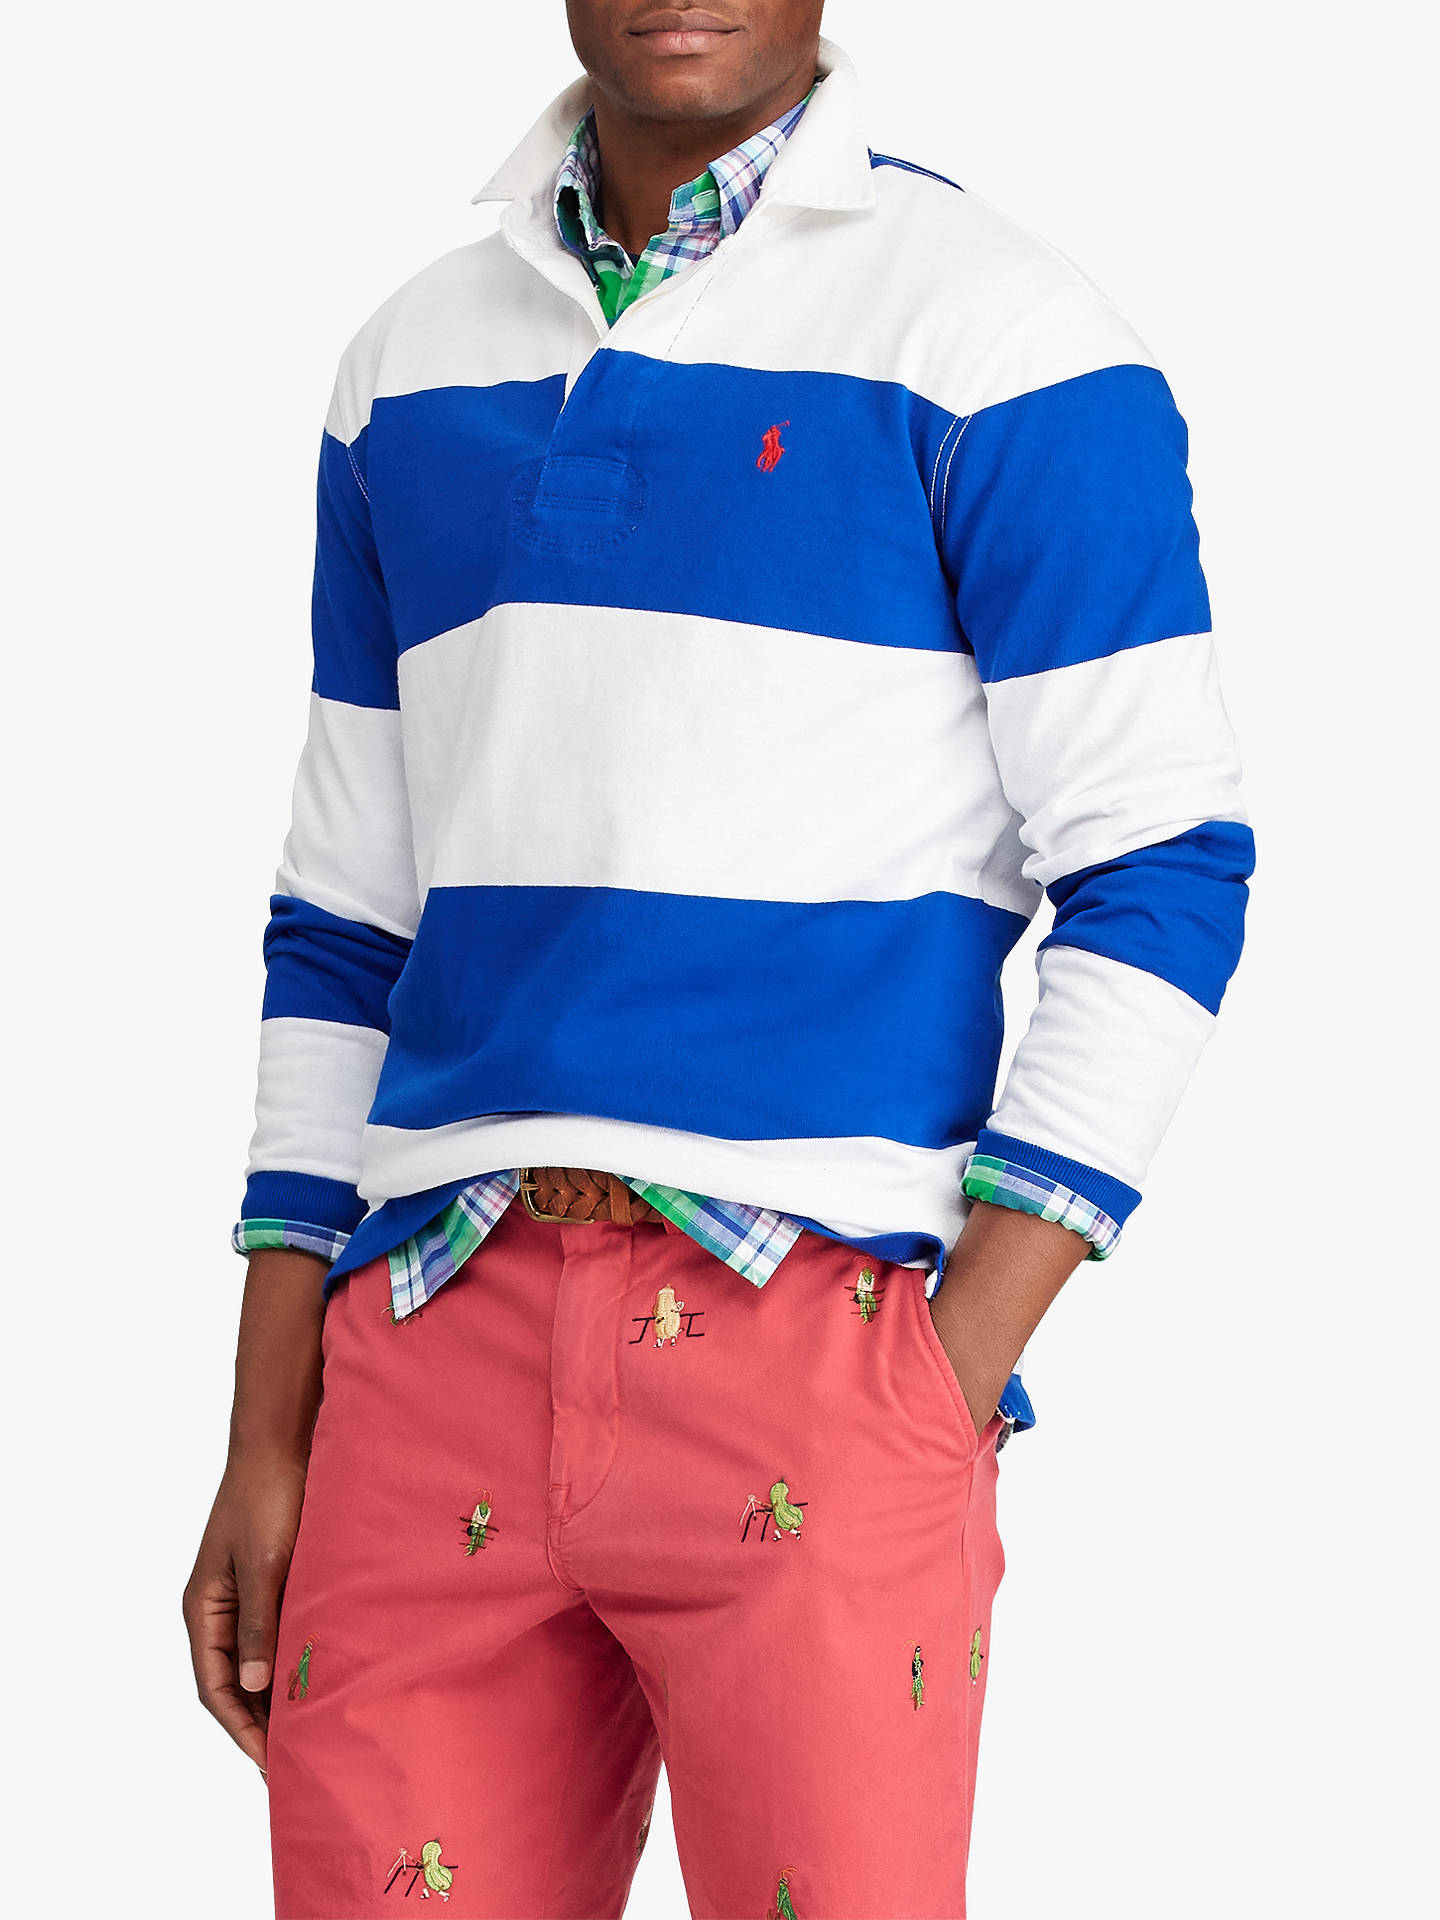 847ad8a839c Buy Polo Ralph Lauren Long Sleeve Stripe Rugby Shirt, Saphire/Oxford, L  Online ...